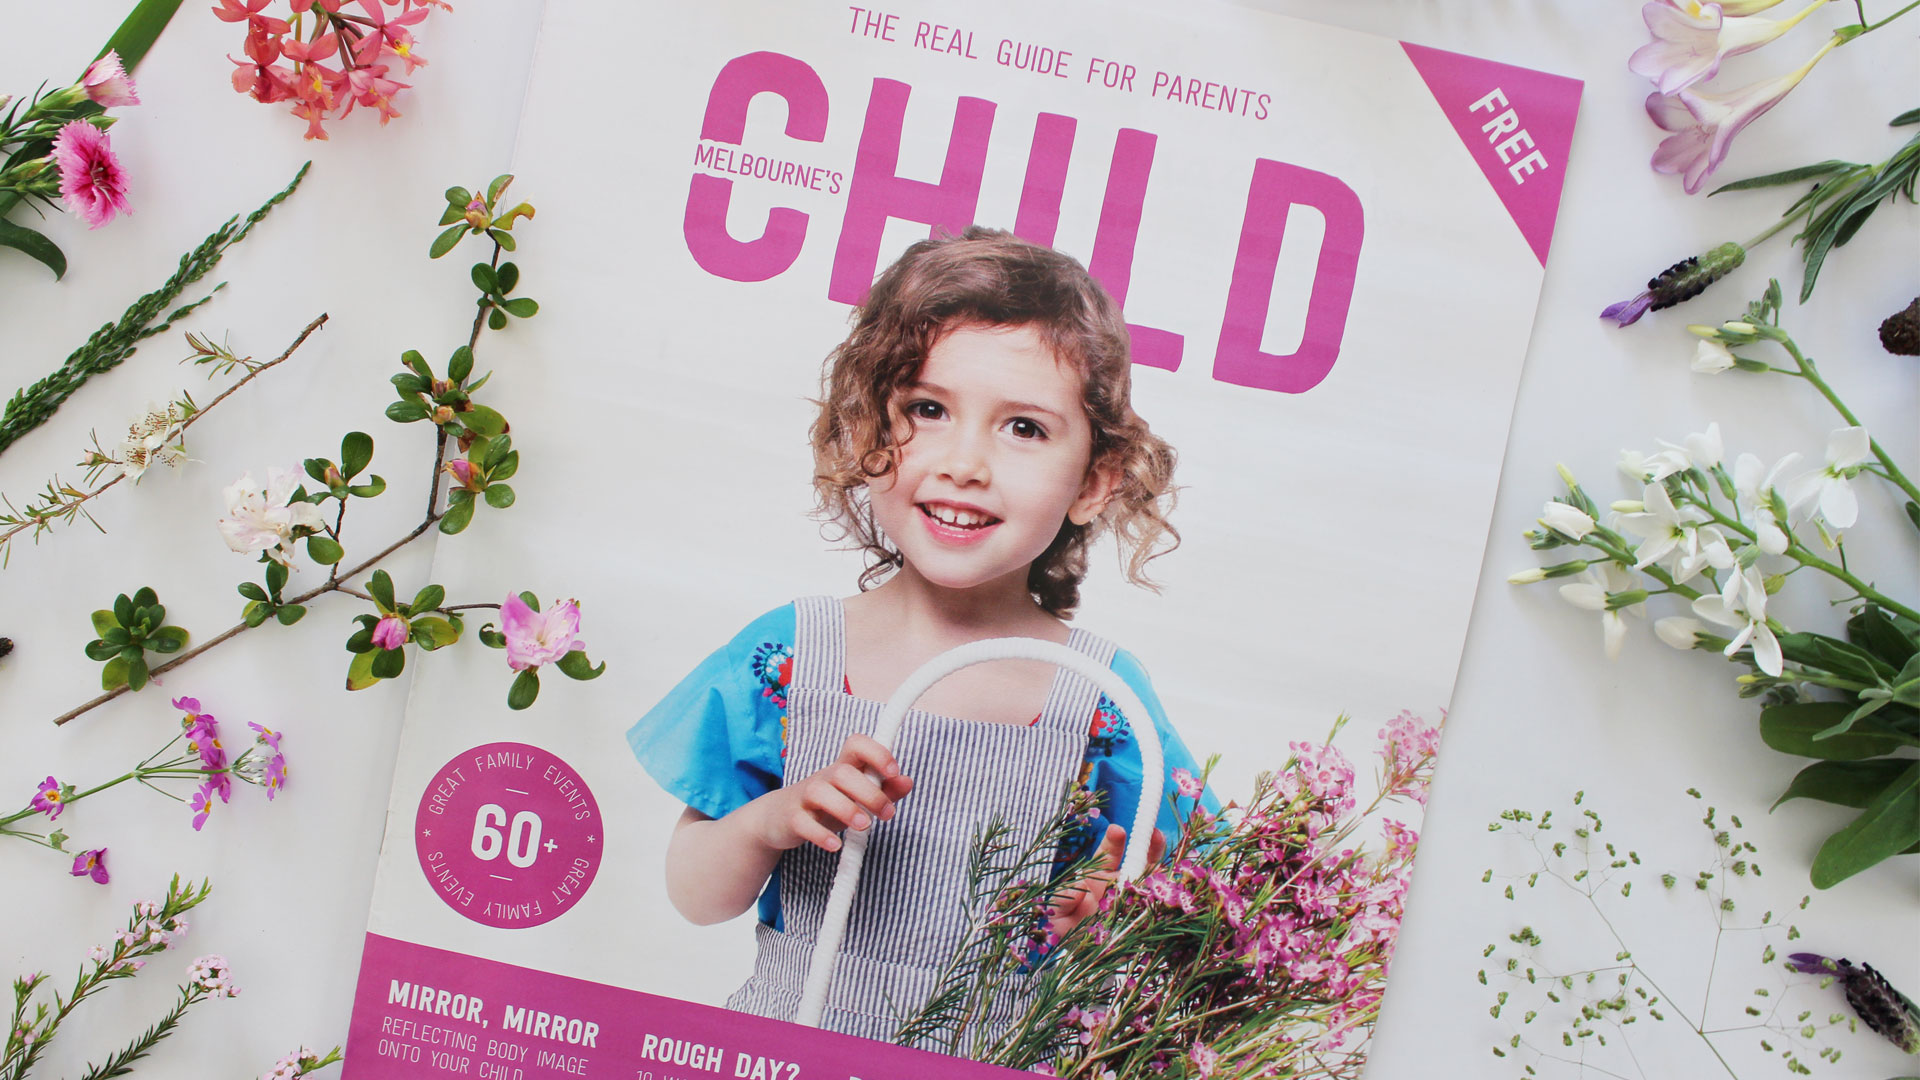 September Issue Of CHILD Magazines